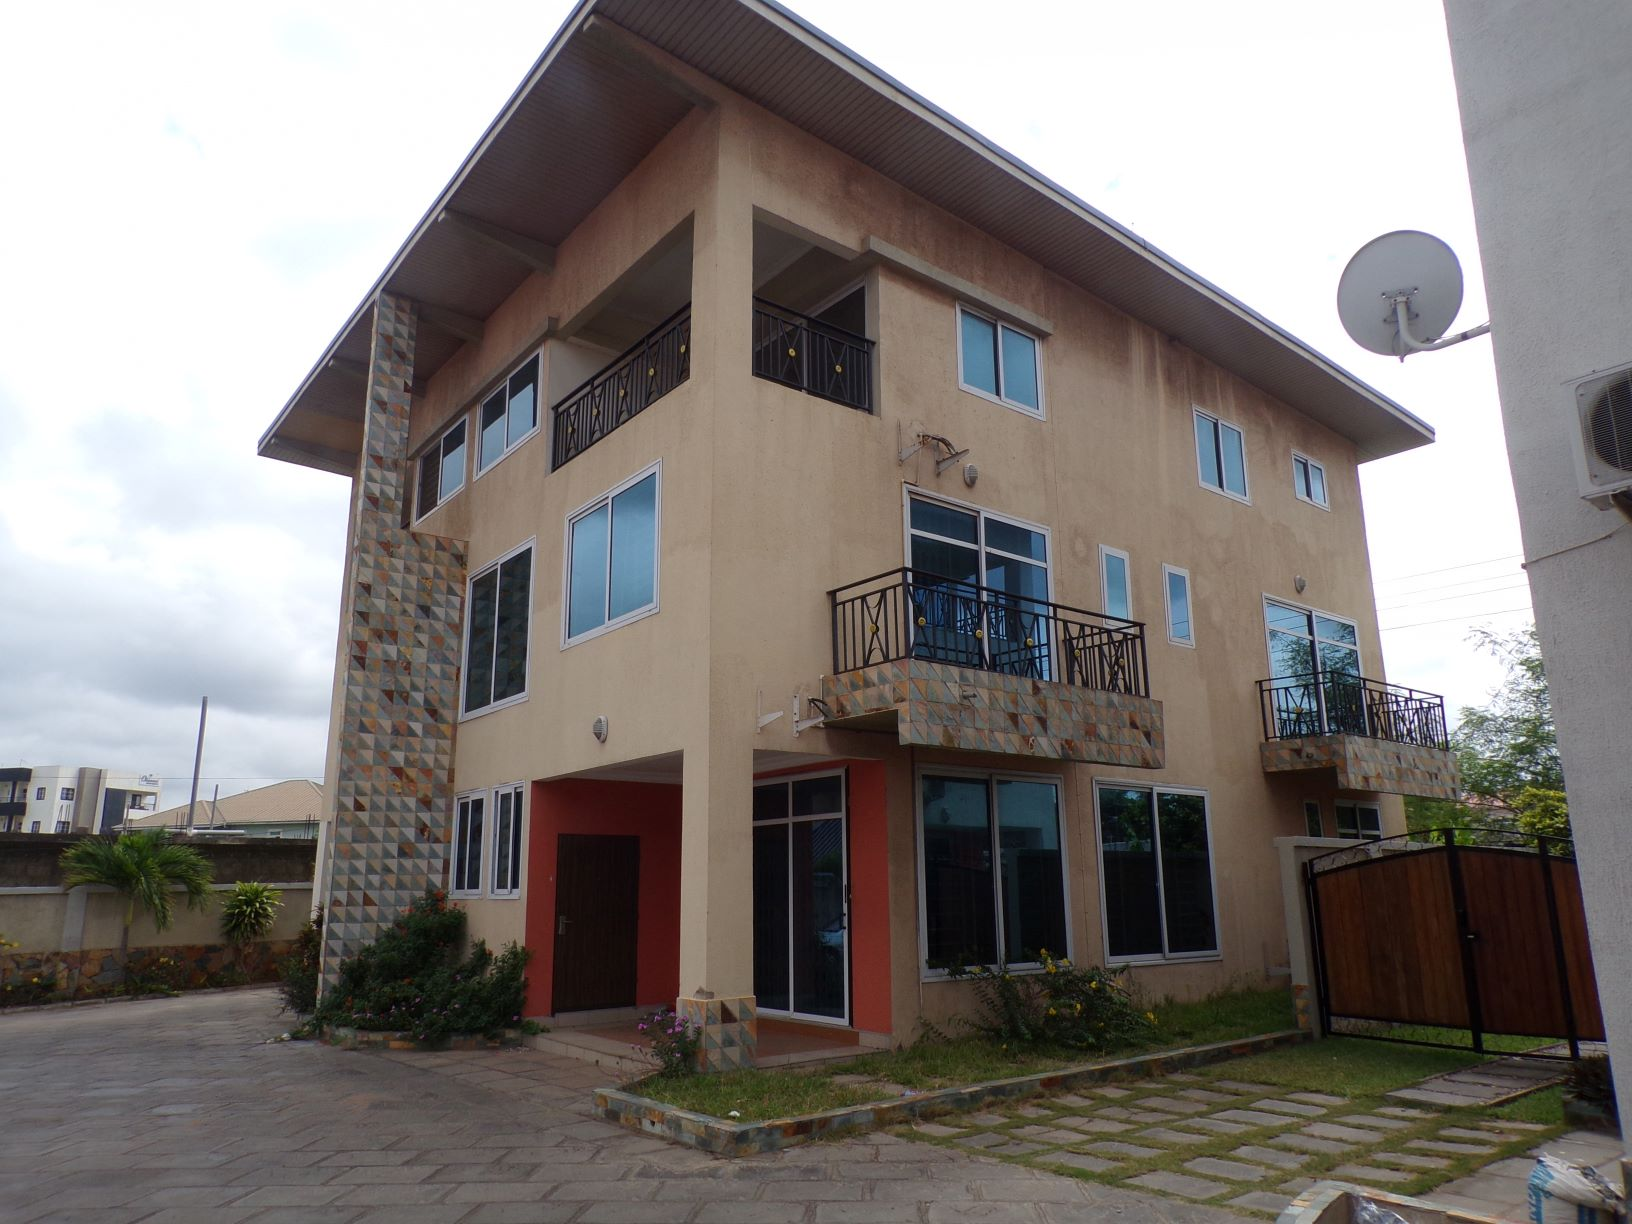 3 bedroom unfurnished townhouse for rent in Roman Ridge.